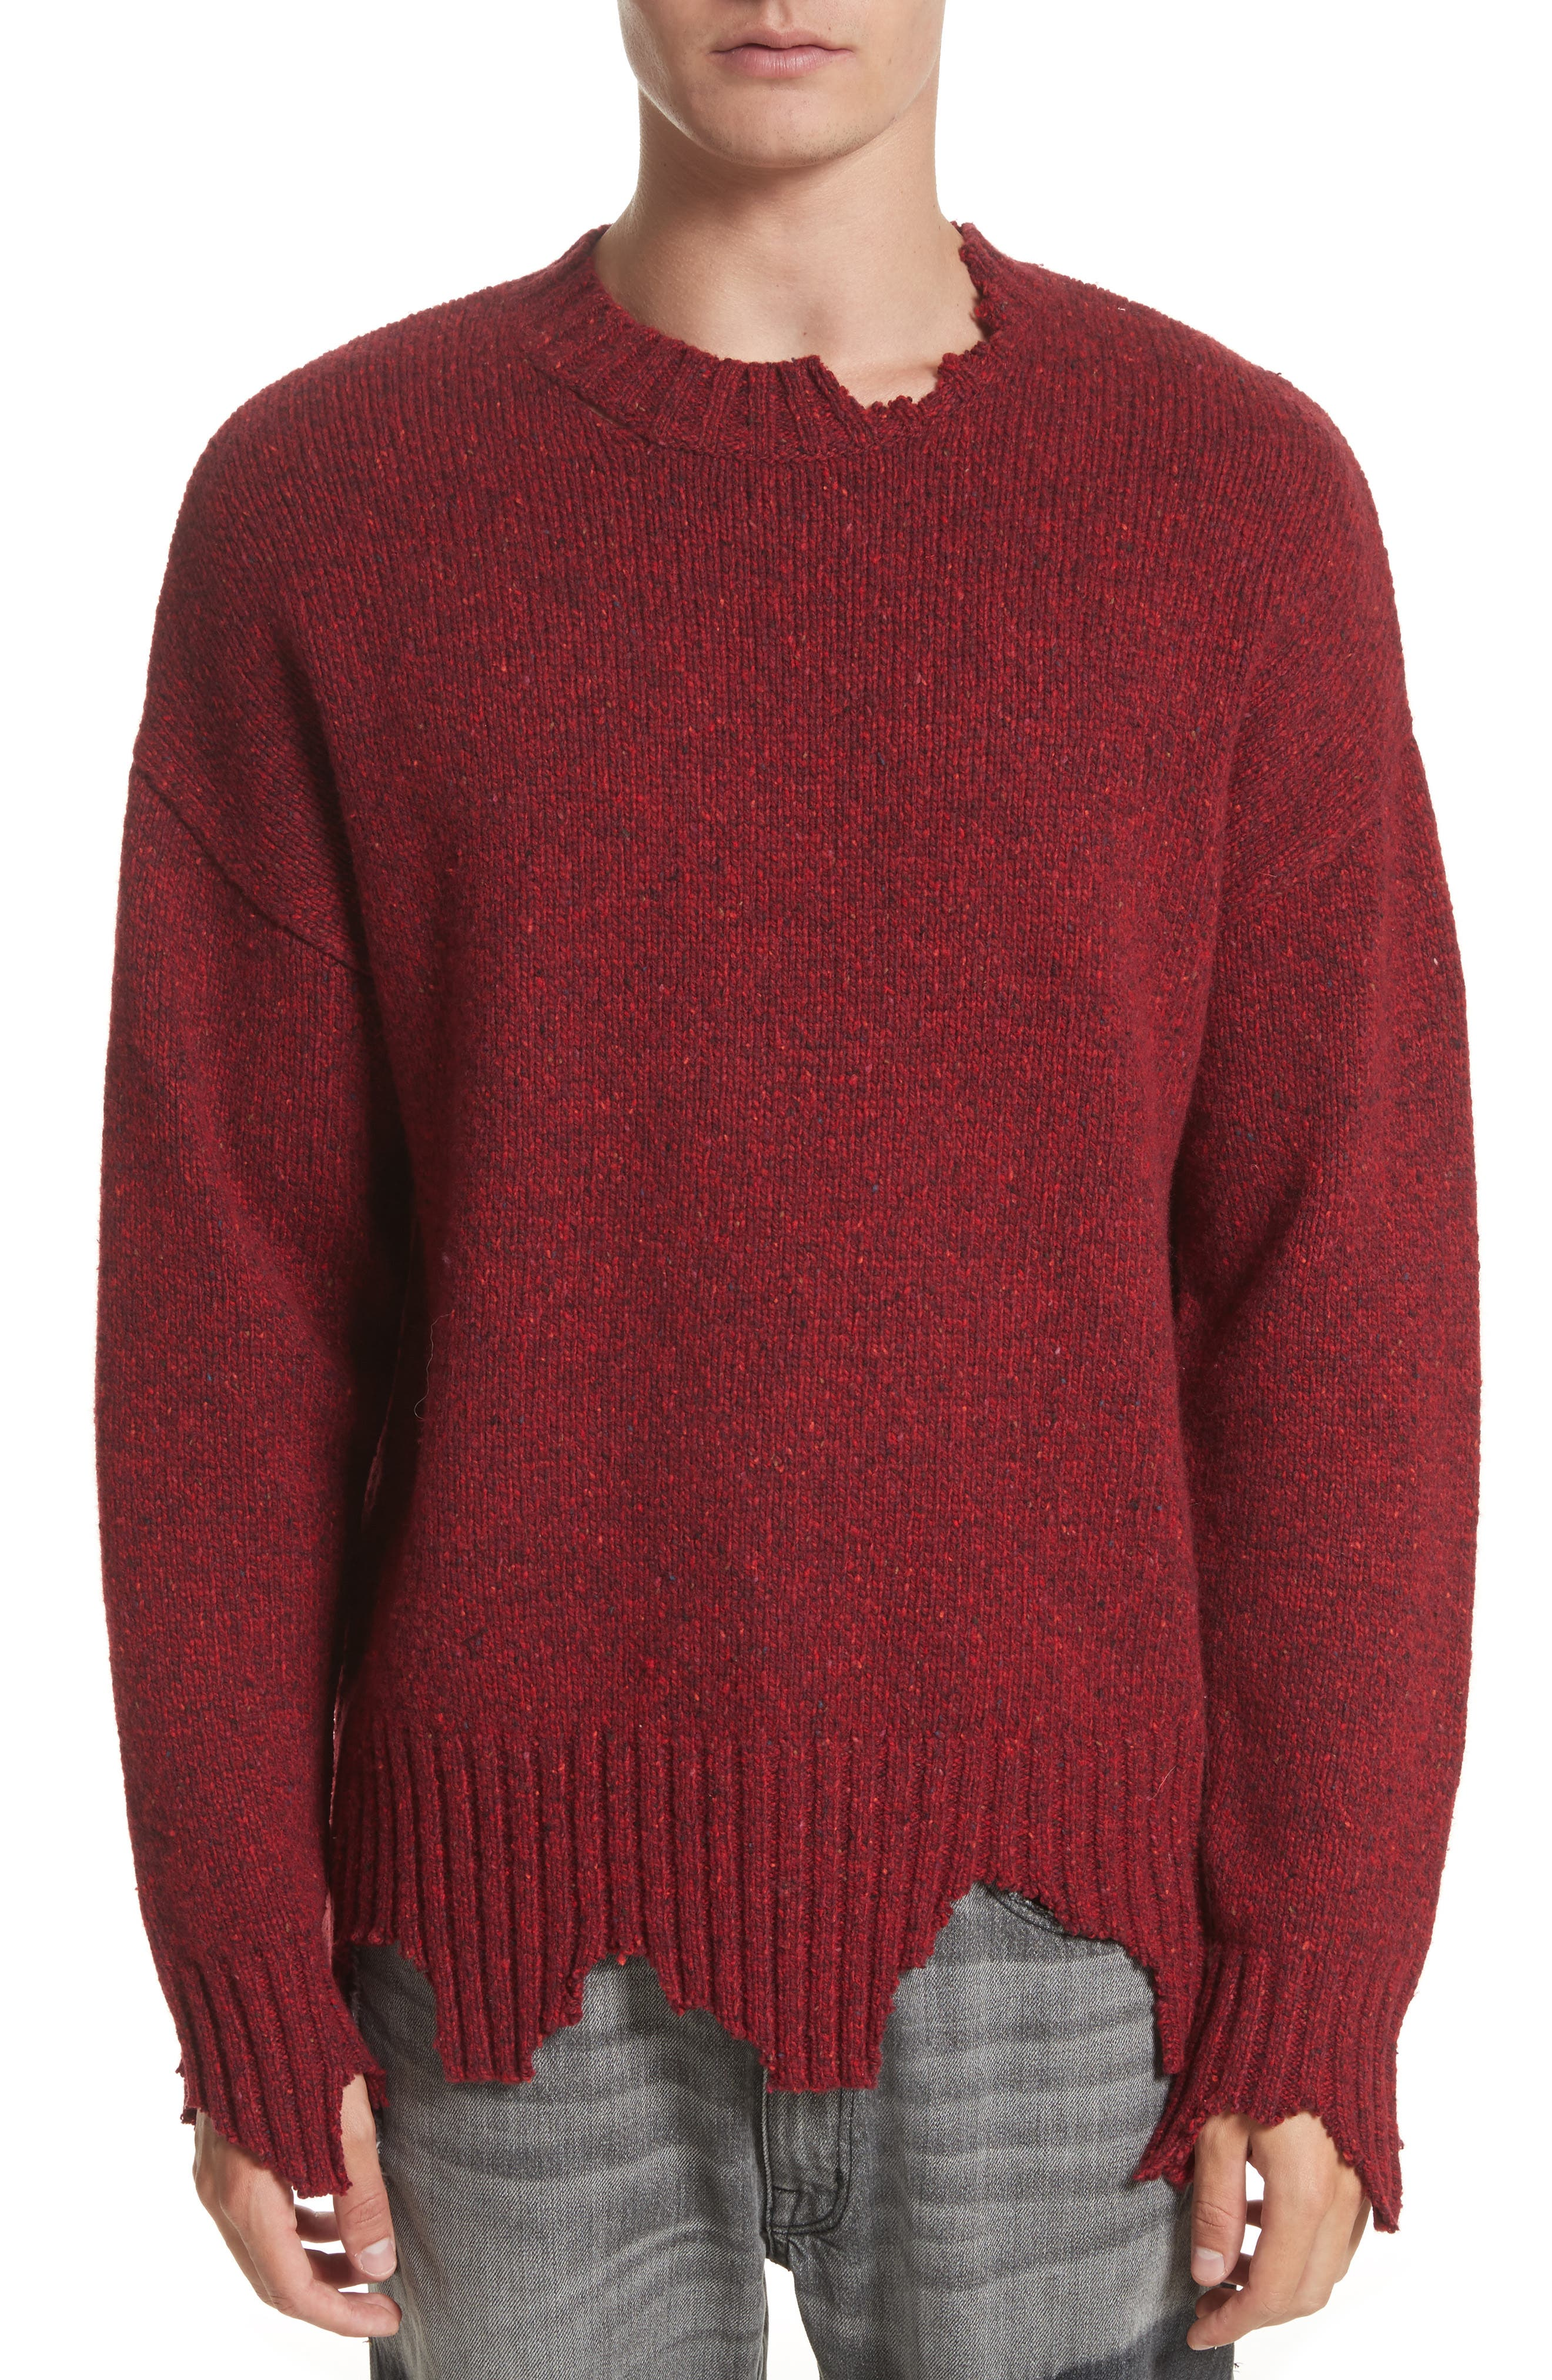 OVADIA & SONS Destroyed Crewneck Sweater